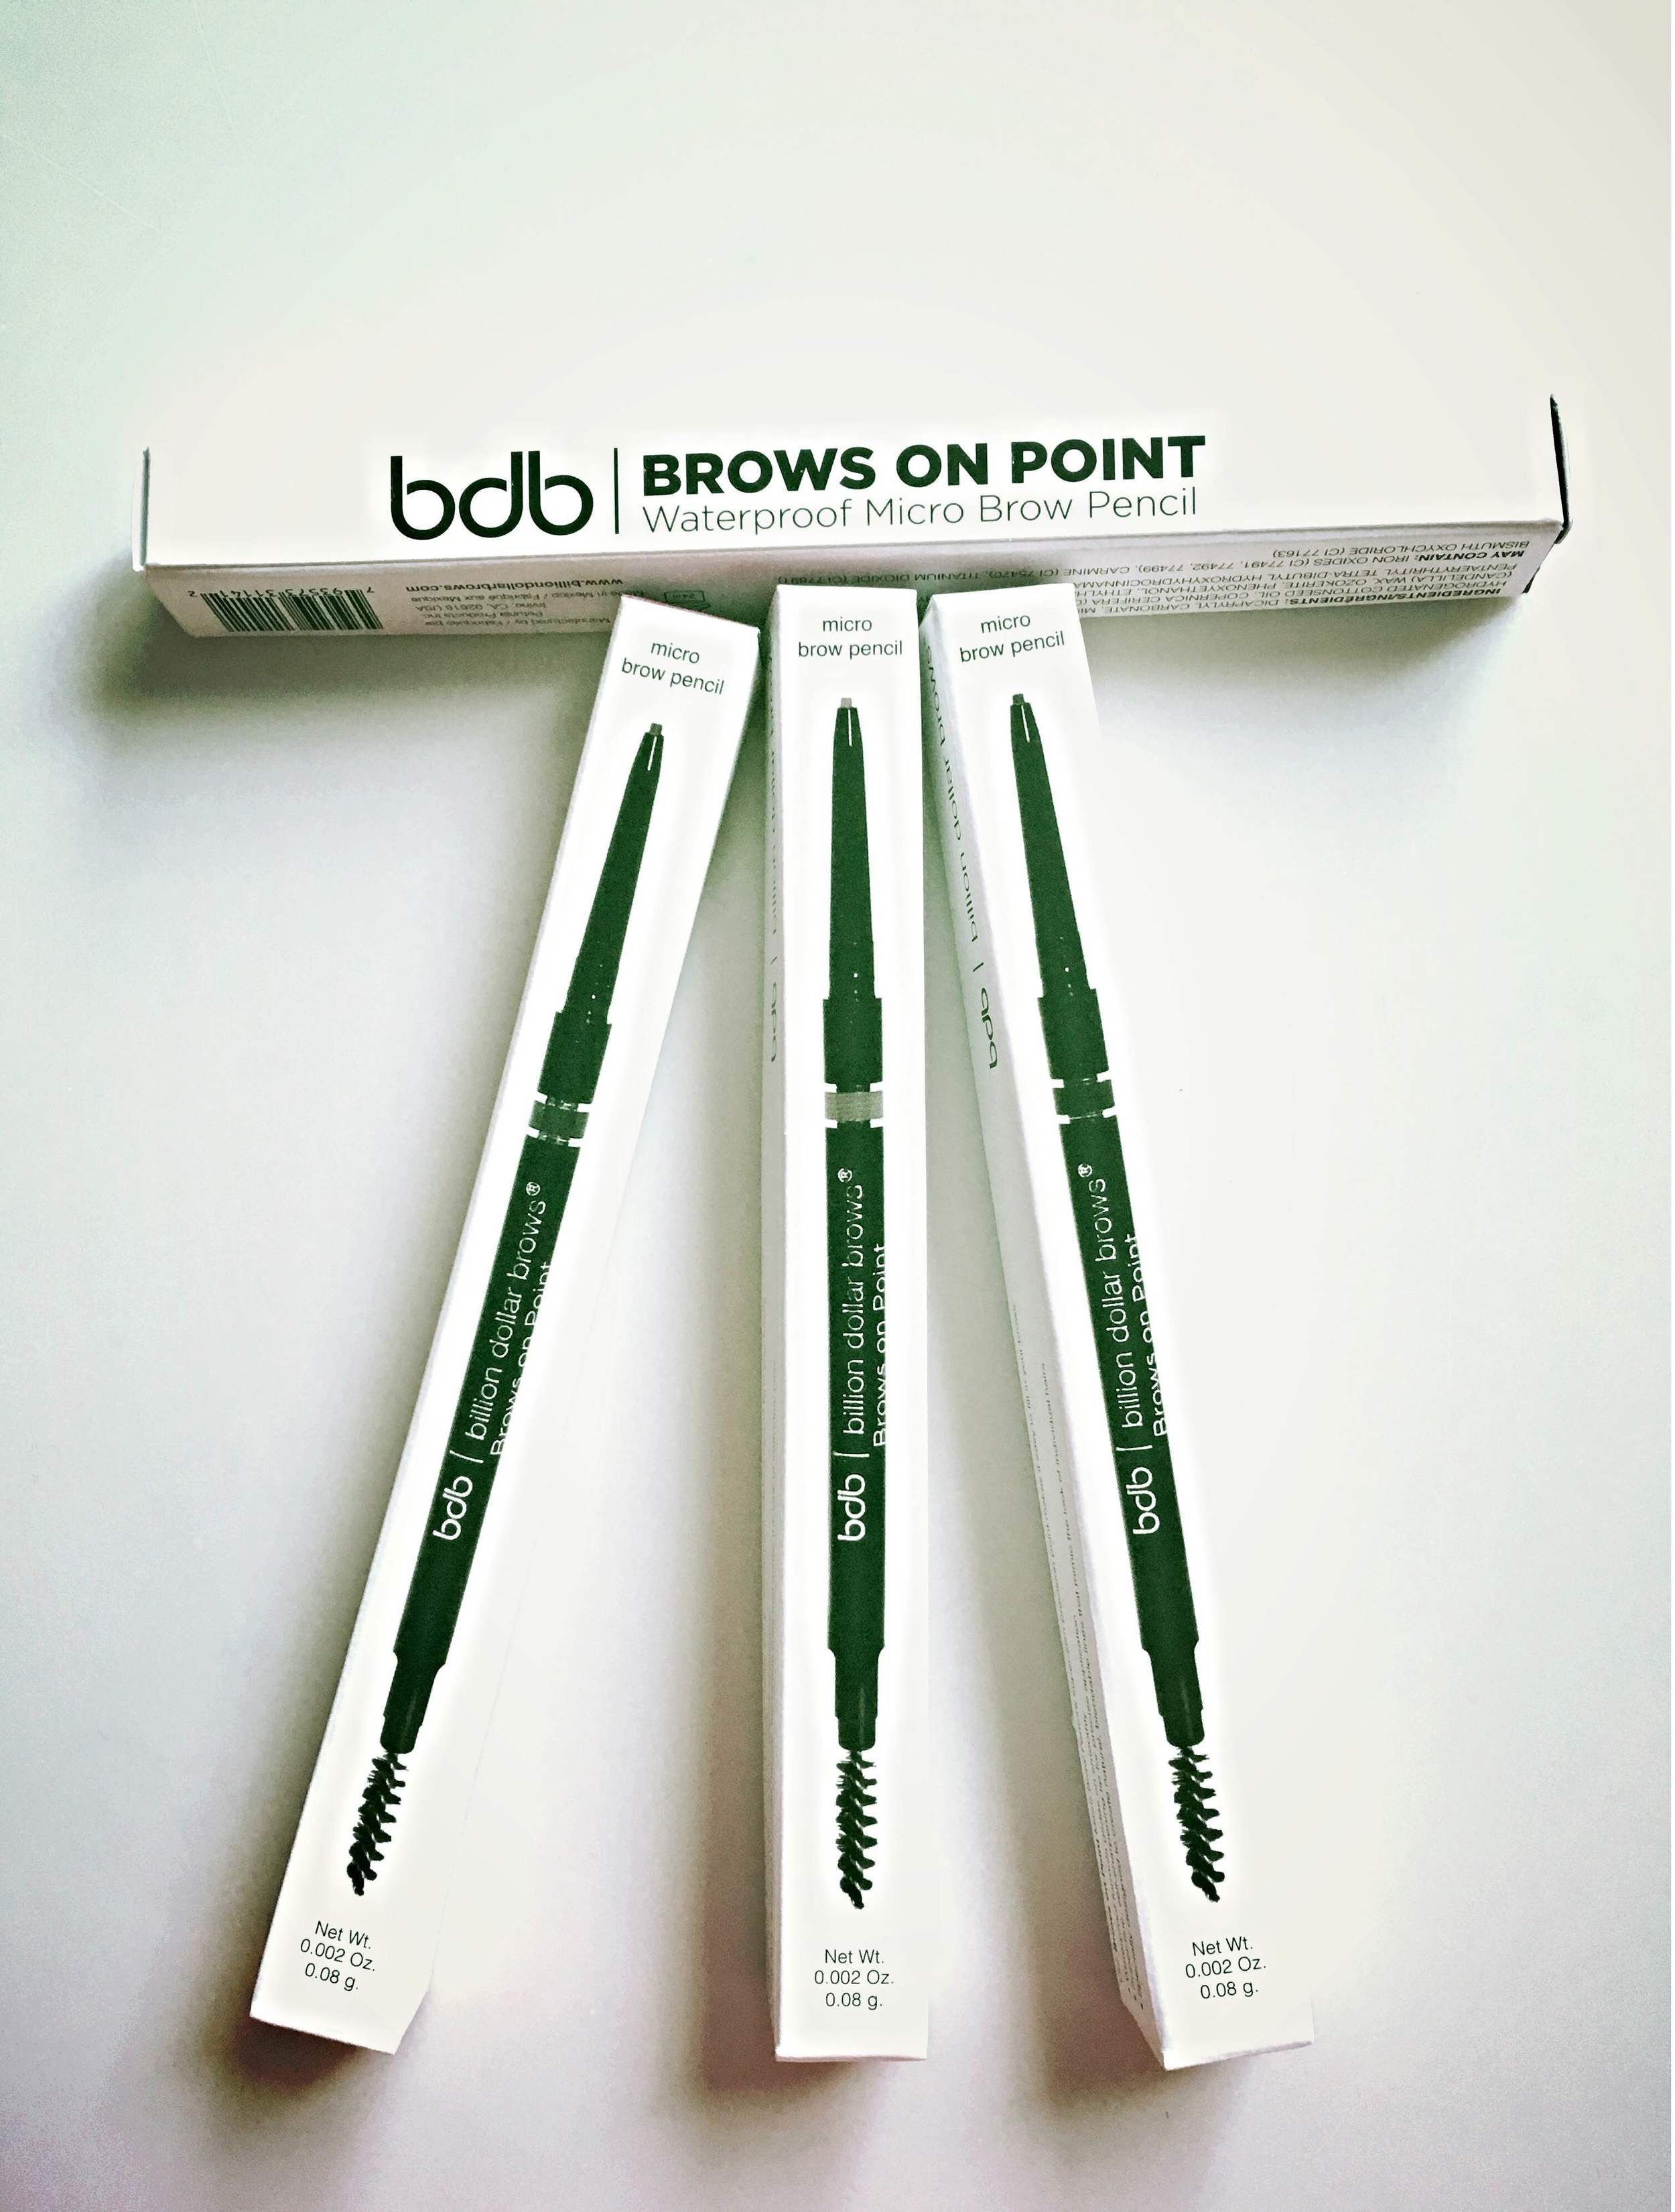 About the Product    New Release!  Be the first influencers to review our brand new line of micro pencils!  The ultra fine tip on this creamy/dreamy, self-sharpening pencil allows you to actually mimic the look of individual brow hairs for natural-looking results.  The waterproof formula goes on like a dream and stays in place at the beach, pool, and gym.  Available in four remarkable shades: Blonde, Light Brown, Taupe, and Raven and colors coordinate perfectly with BDB powders for ultra-customized brows.    Learn About the Brand    Eyebrows are one of the most important features of our faces - and yet they are often the most neglected.  We believe that beautiful brows are a right, not a privilege. Our products are priced fairly so that you don't have to break the bank to have Billion Dollar Brows.   *Shop Online:   http://www.billiondollarbrows.com/